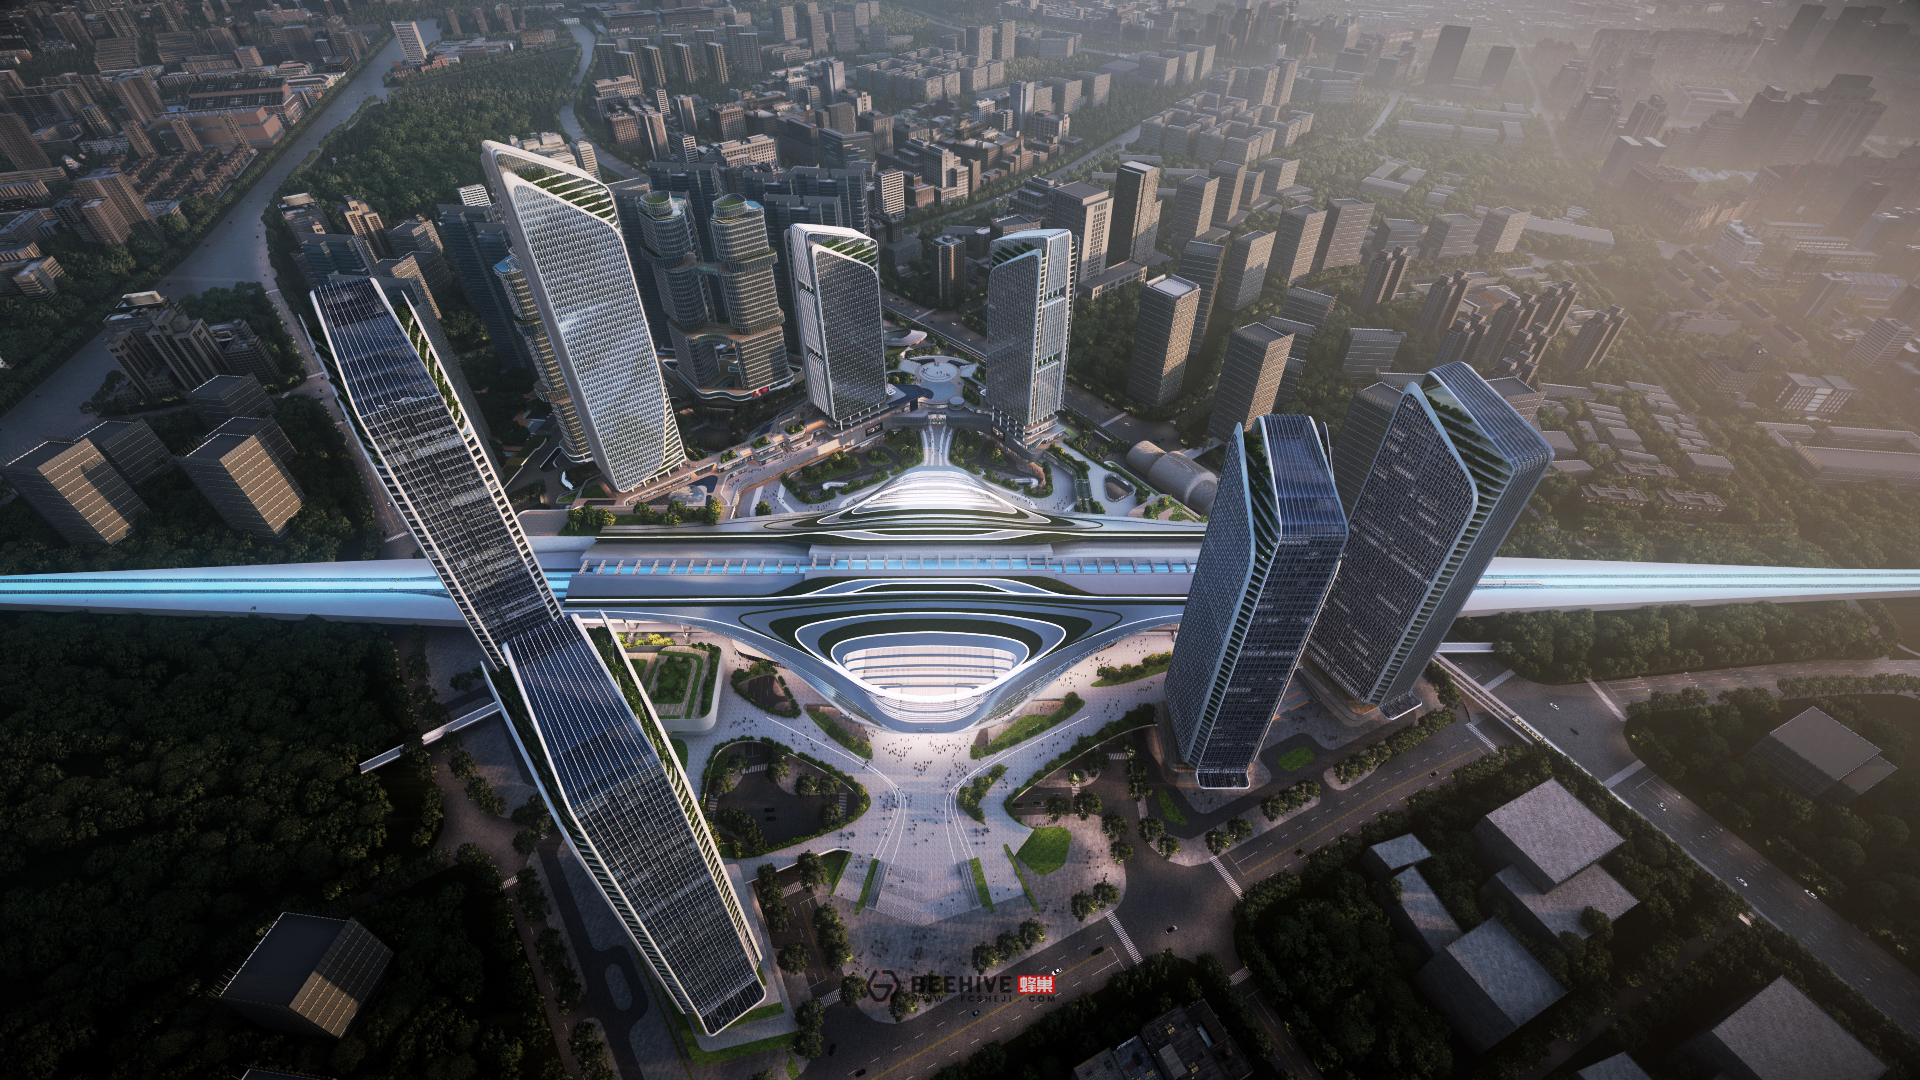 Humen High-Speed Rail Station Expansion Project Master Plan. Design and Project Architect: Aedas. Client: Poly Bay Area Investment and Development CO., LTD.